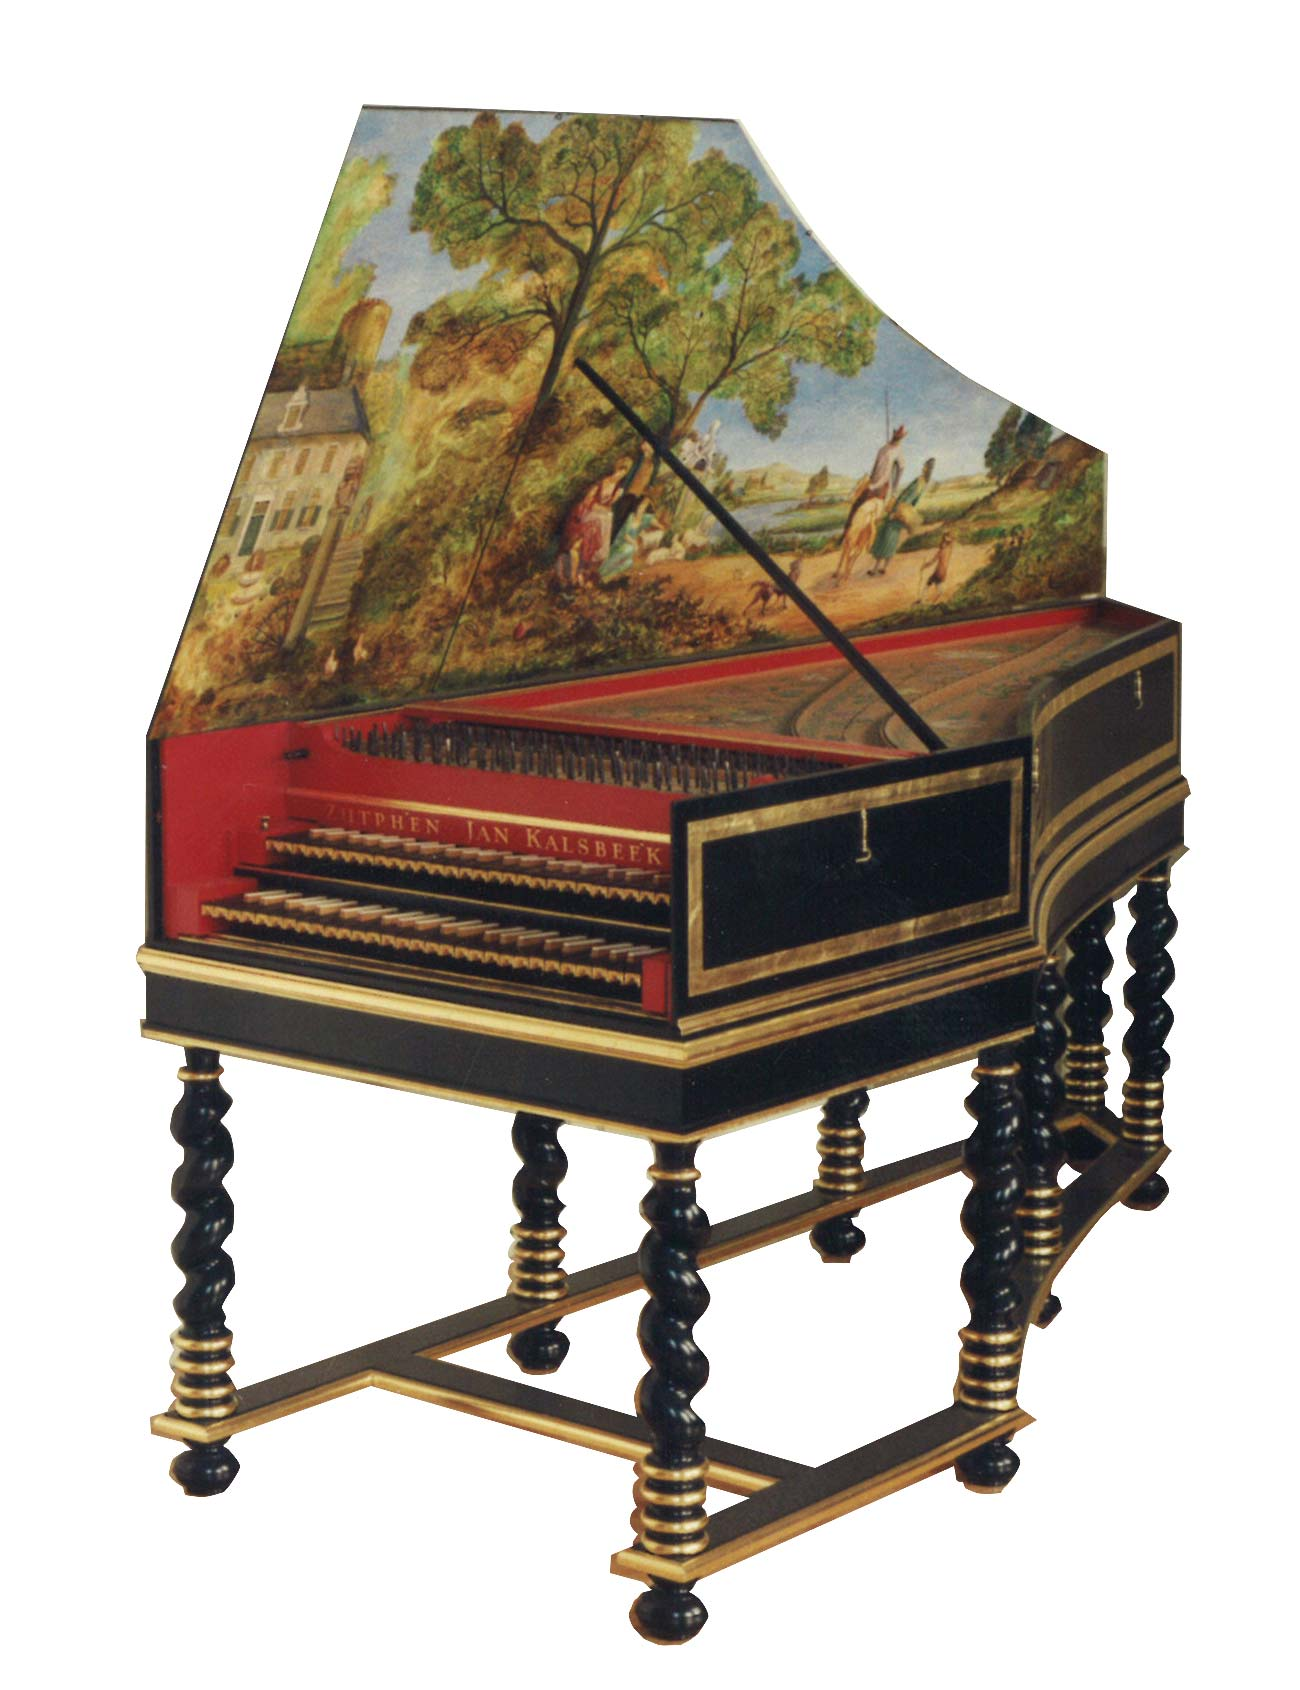 Denis harpsichord made by Jan Kalsbeek